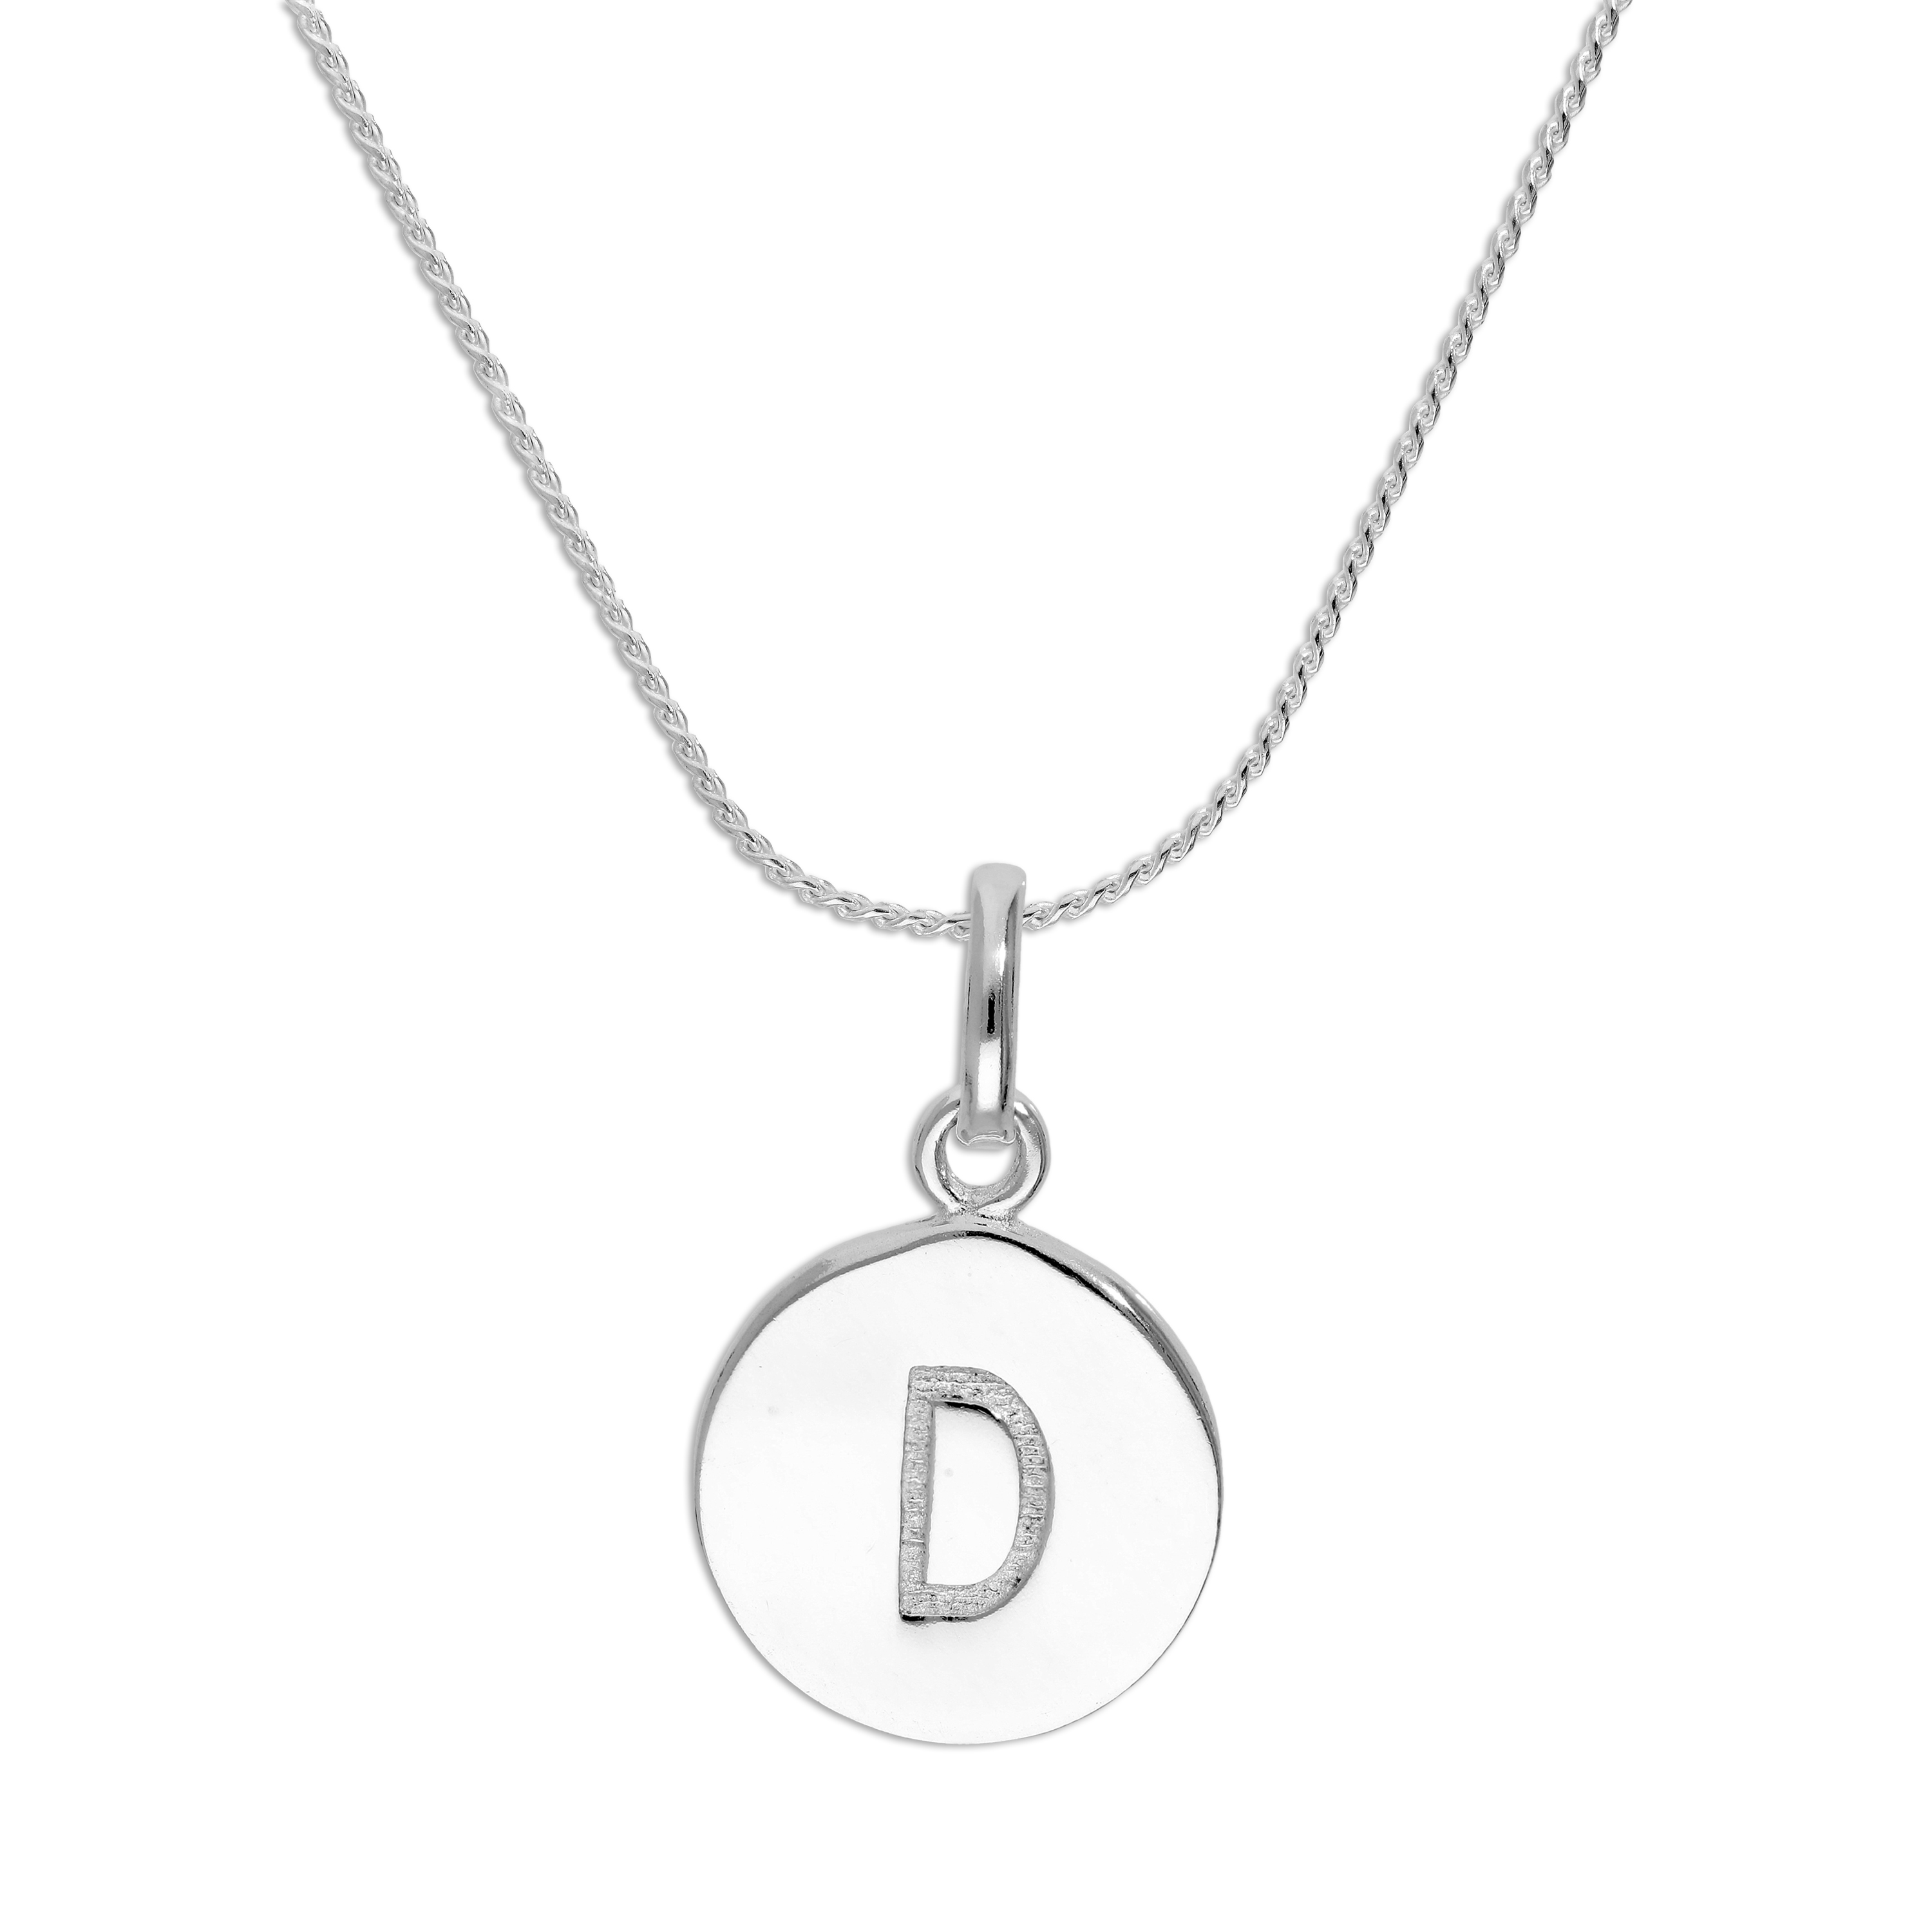 An image of Sterling Silver Initial Letter D Necklace 22 Inches Blue